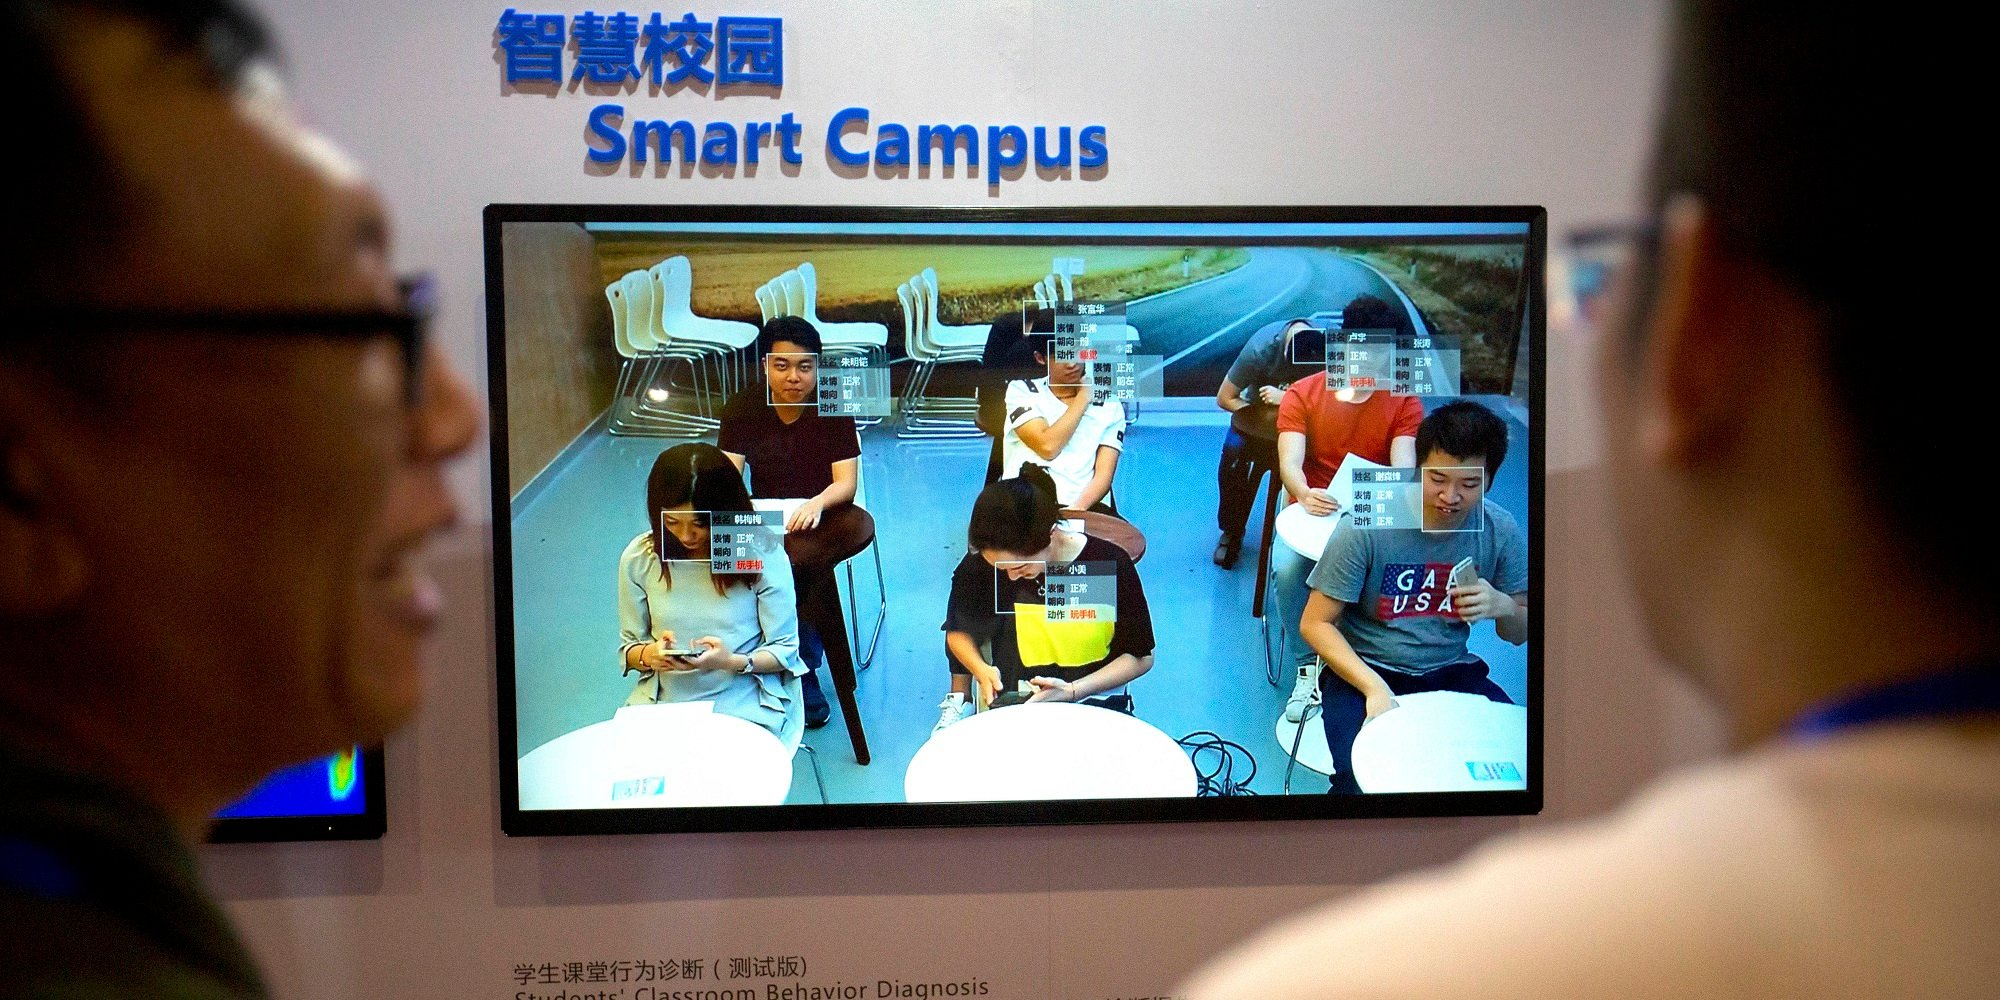 A Chinese School is Using Facial Recognition to Analyze